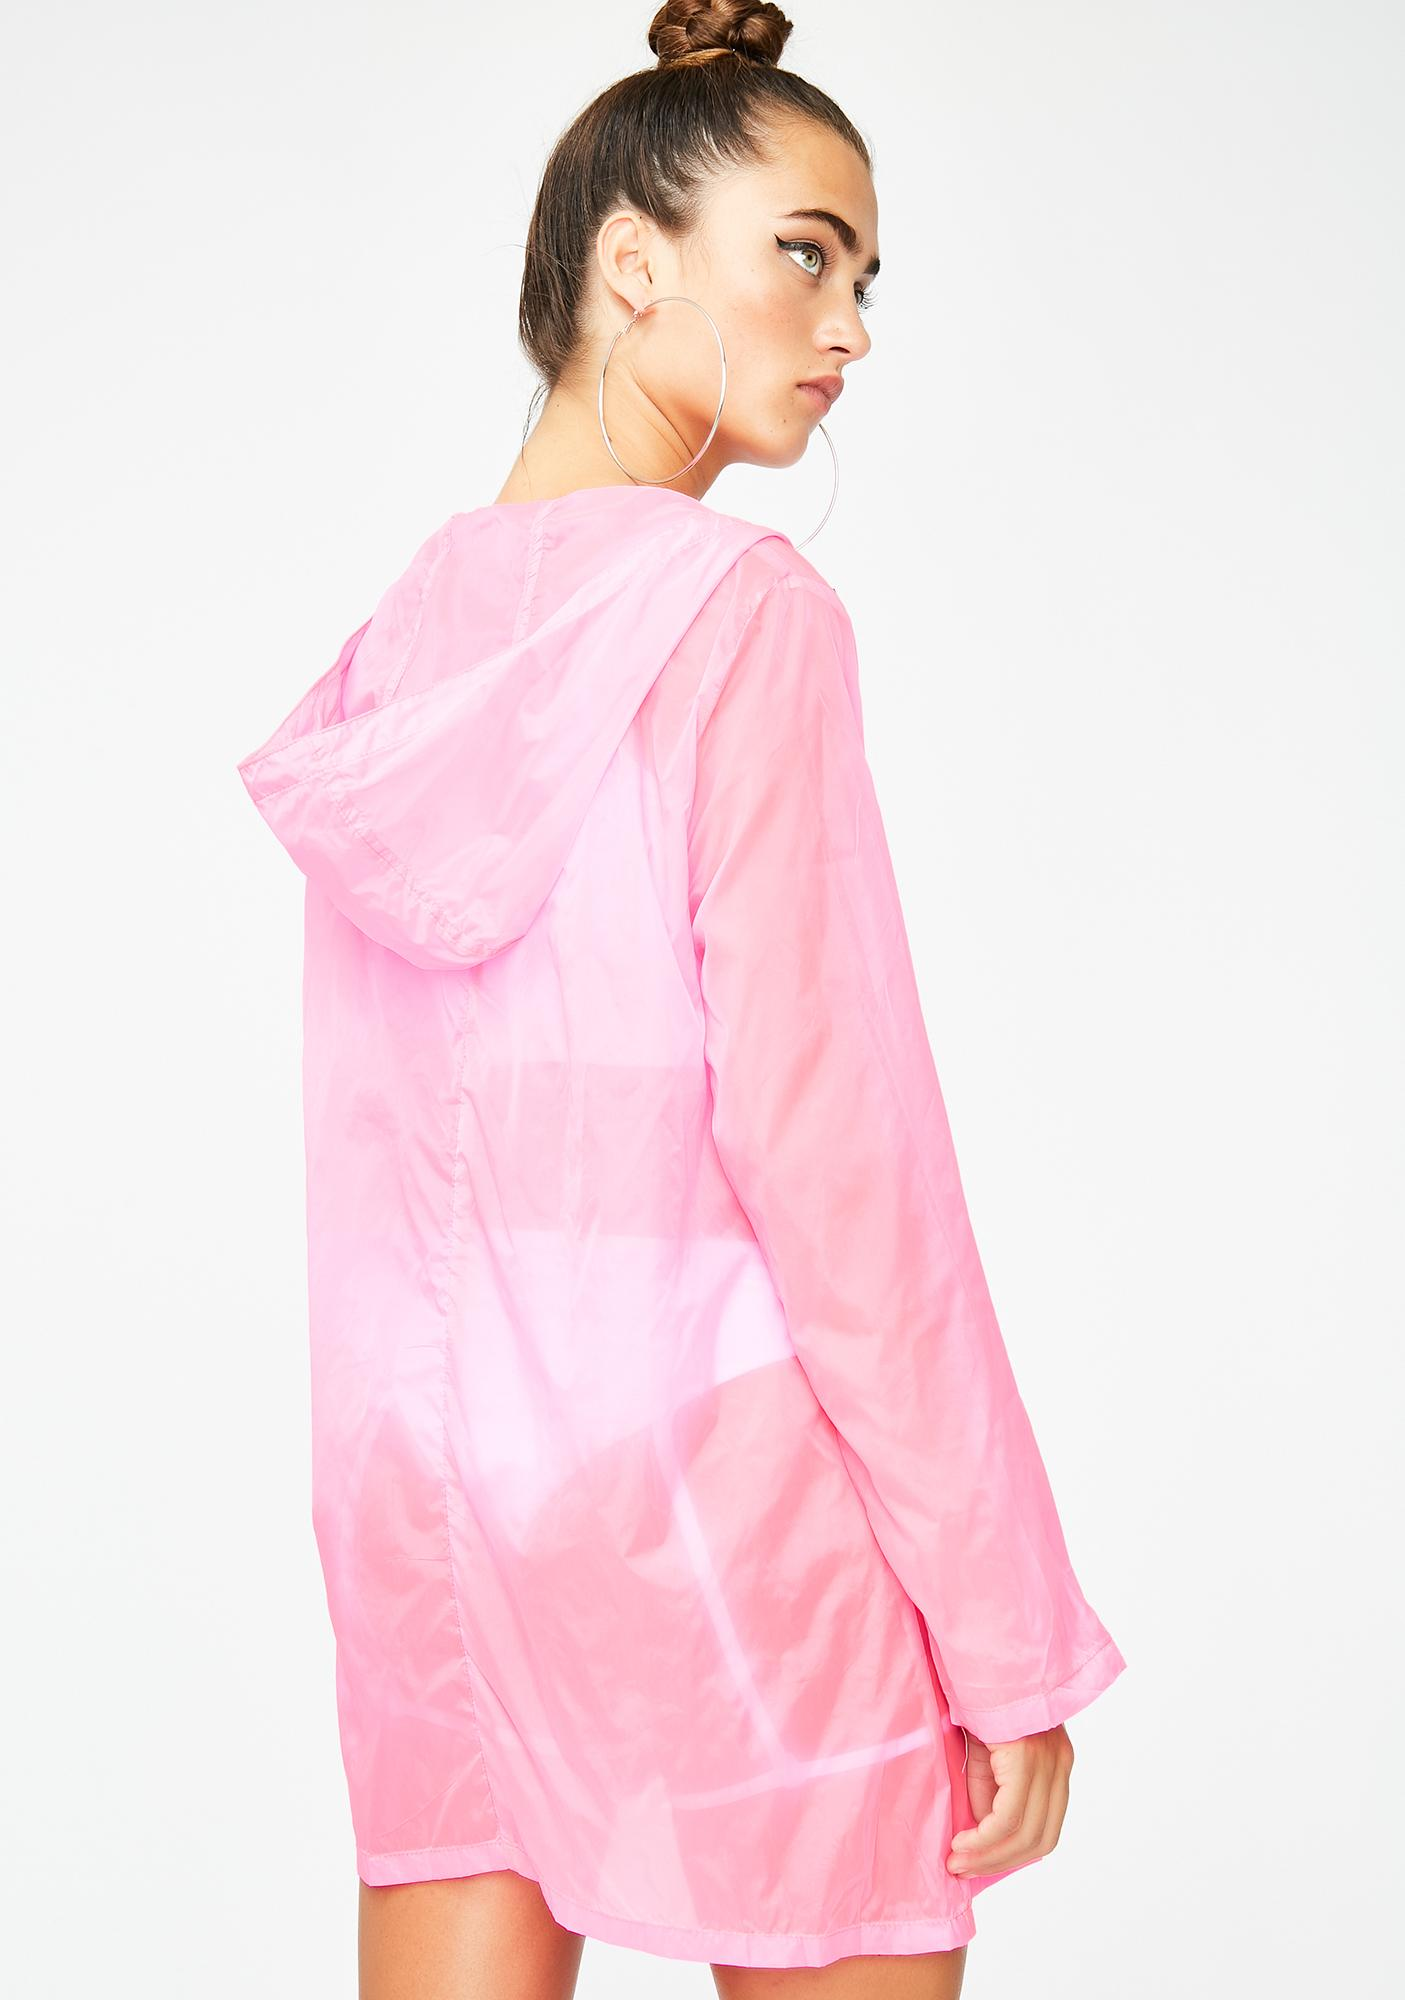 Bardie Dreamz Zip Up Jacket